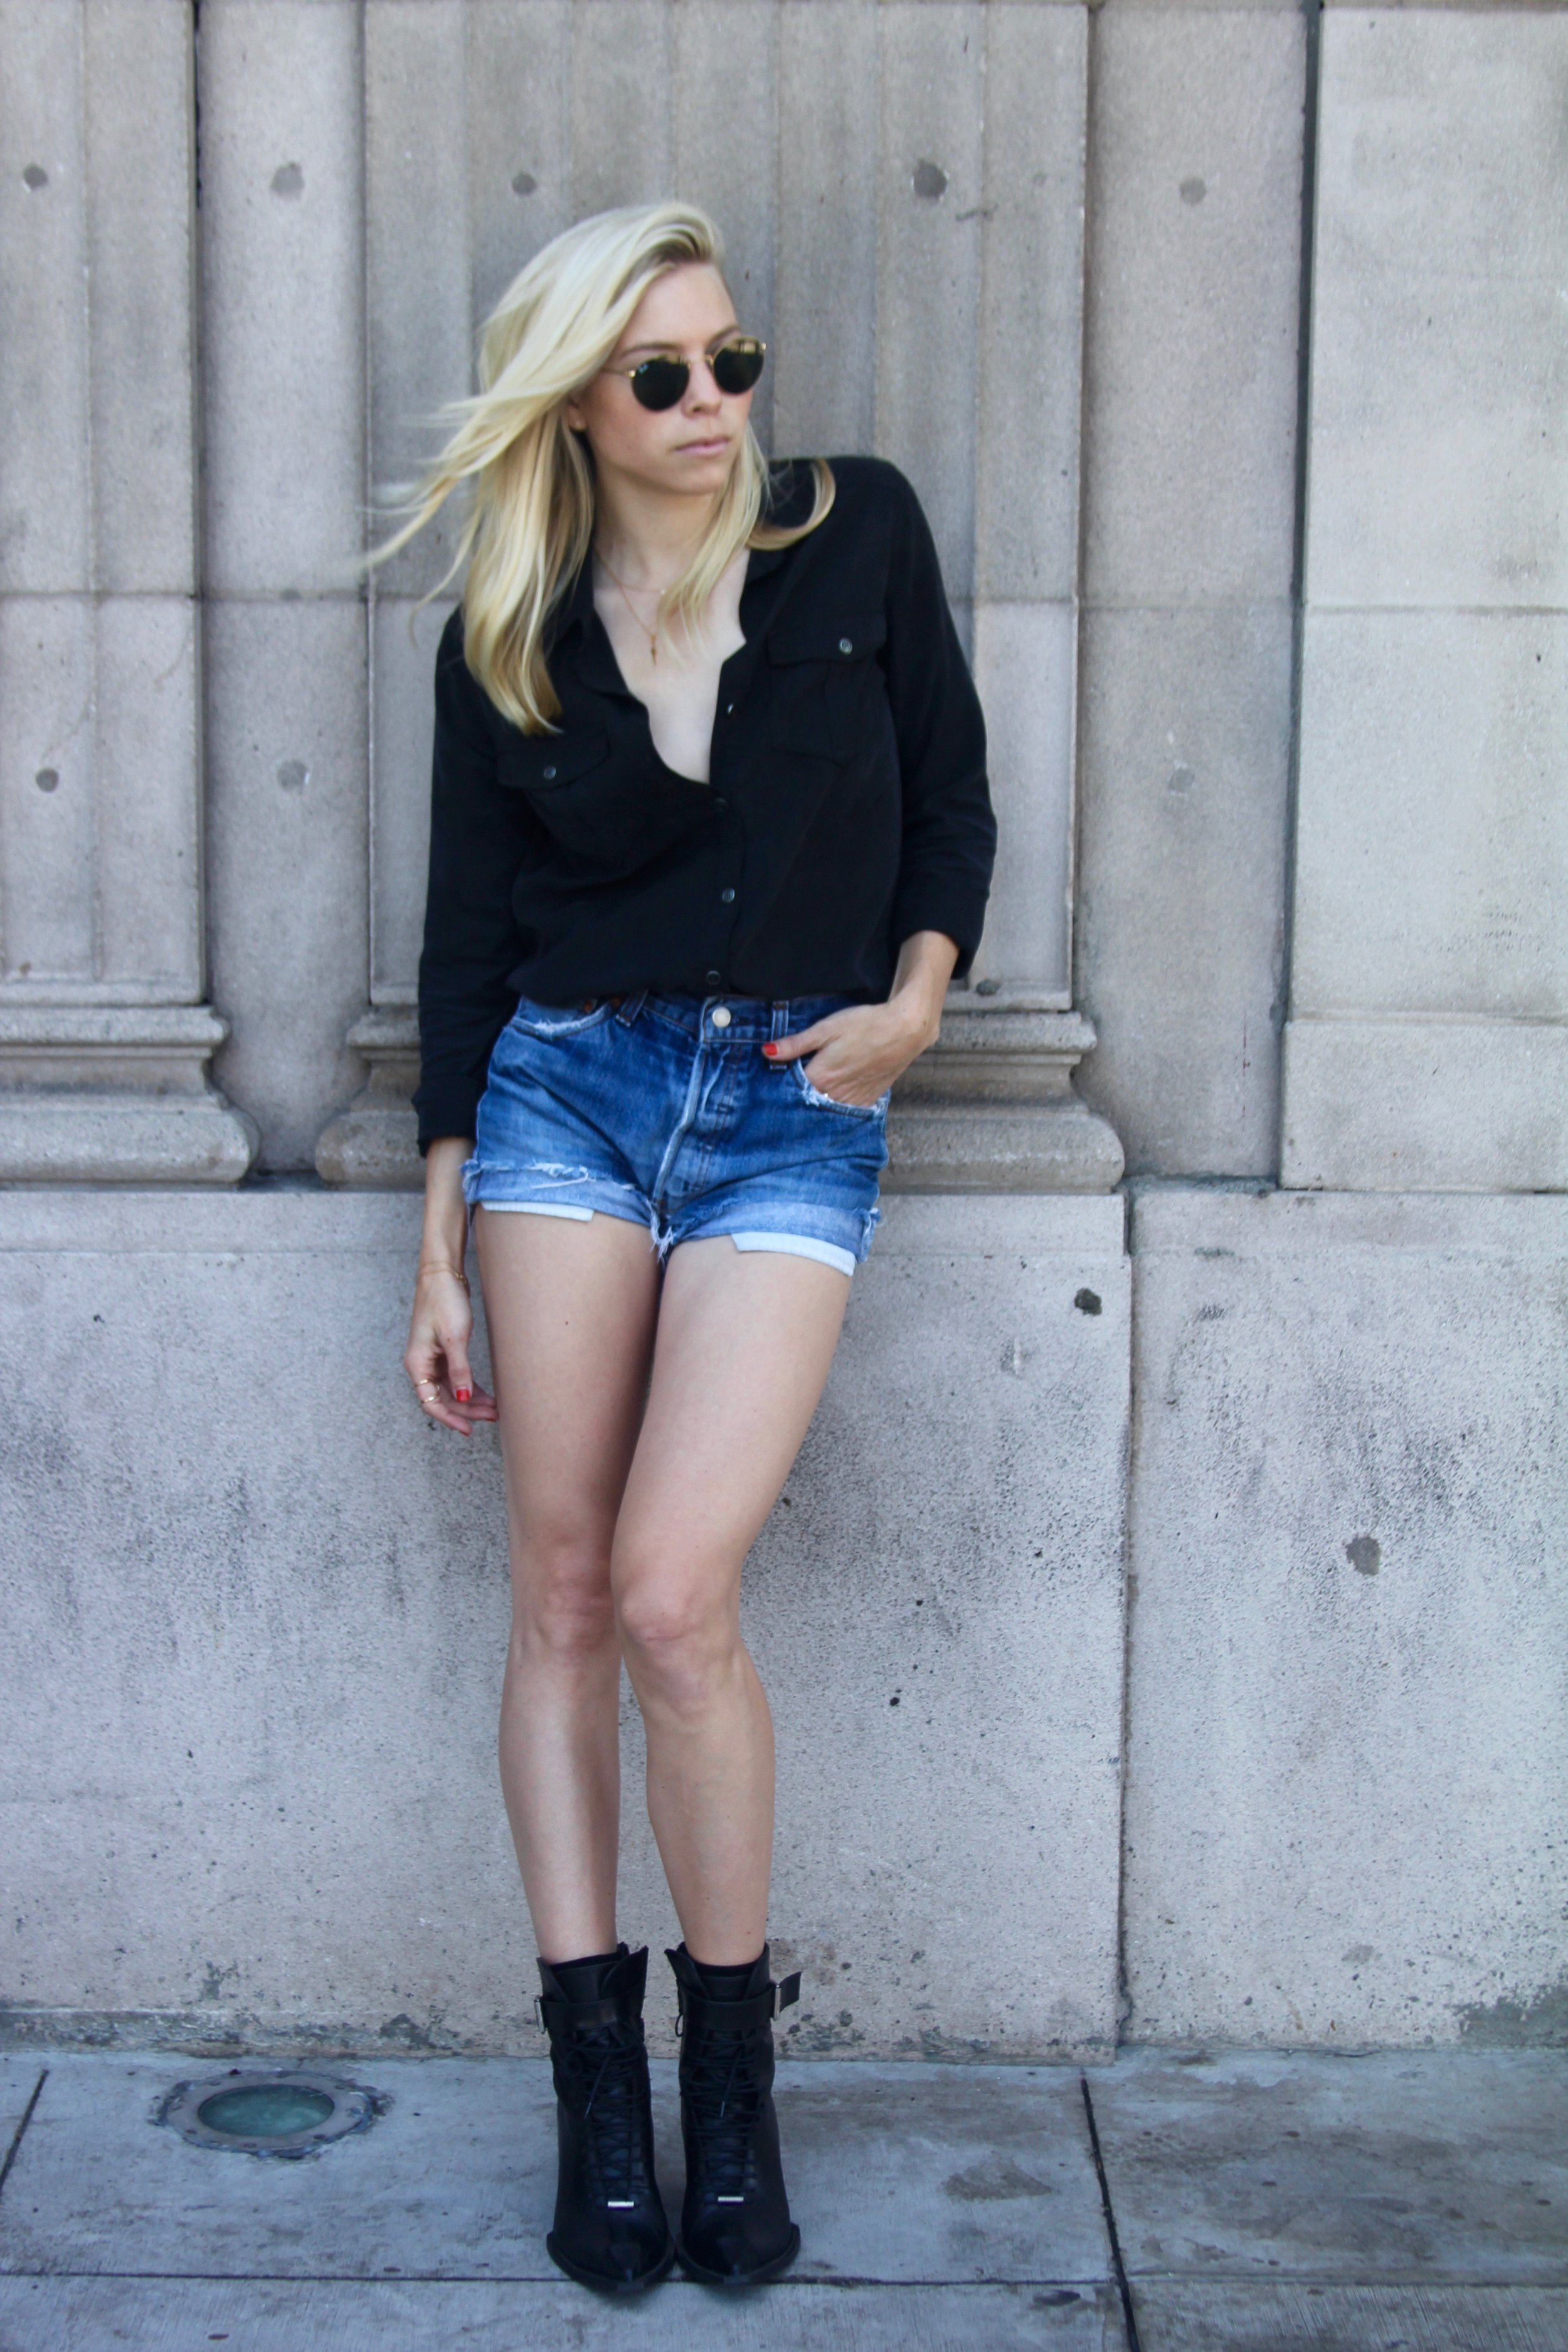 Paige button down + Levi denim shorts + Fluevog boots = RAD